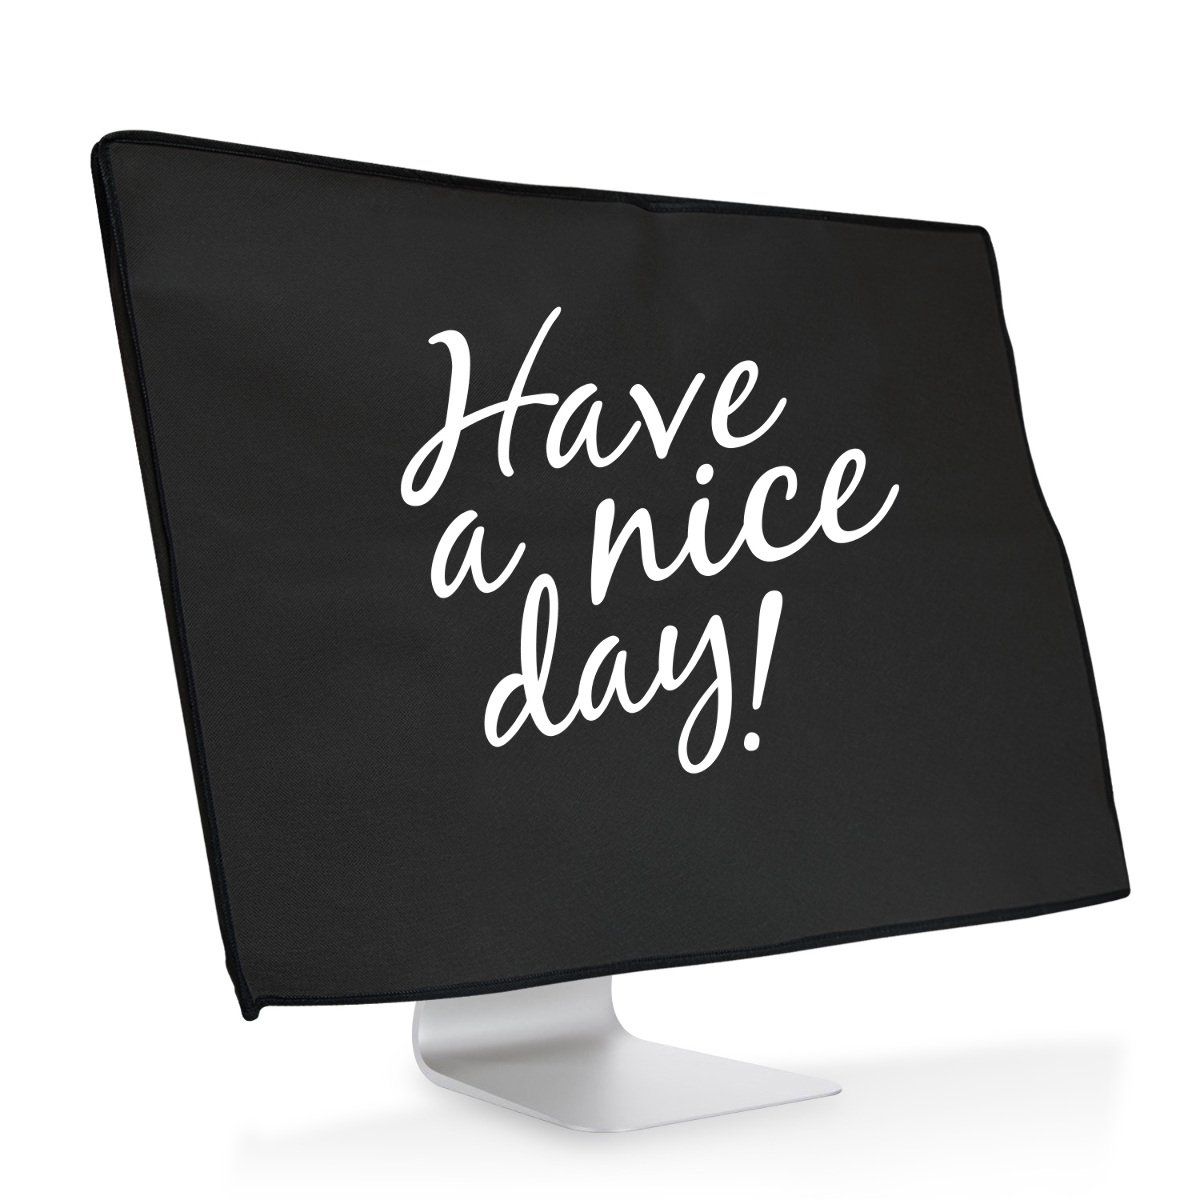 """kwmobile Screen protective cover for Apple iMac 21.5"""" - Dust cover PC monitor case in white black Design Have a Nice Day"""